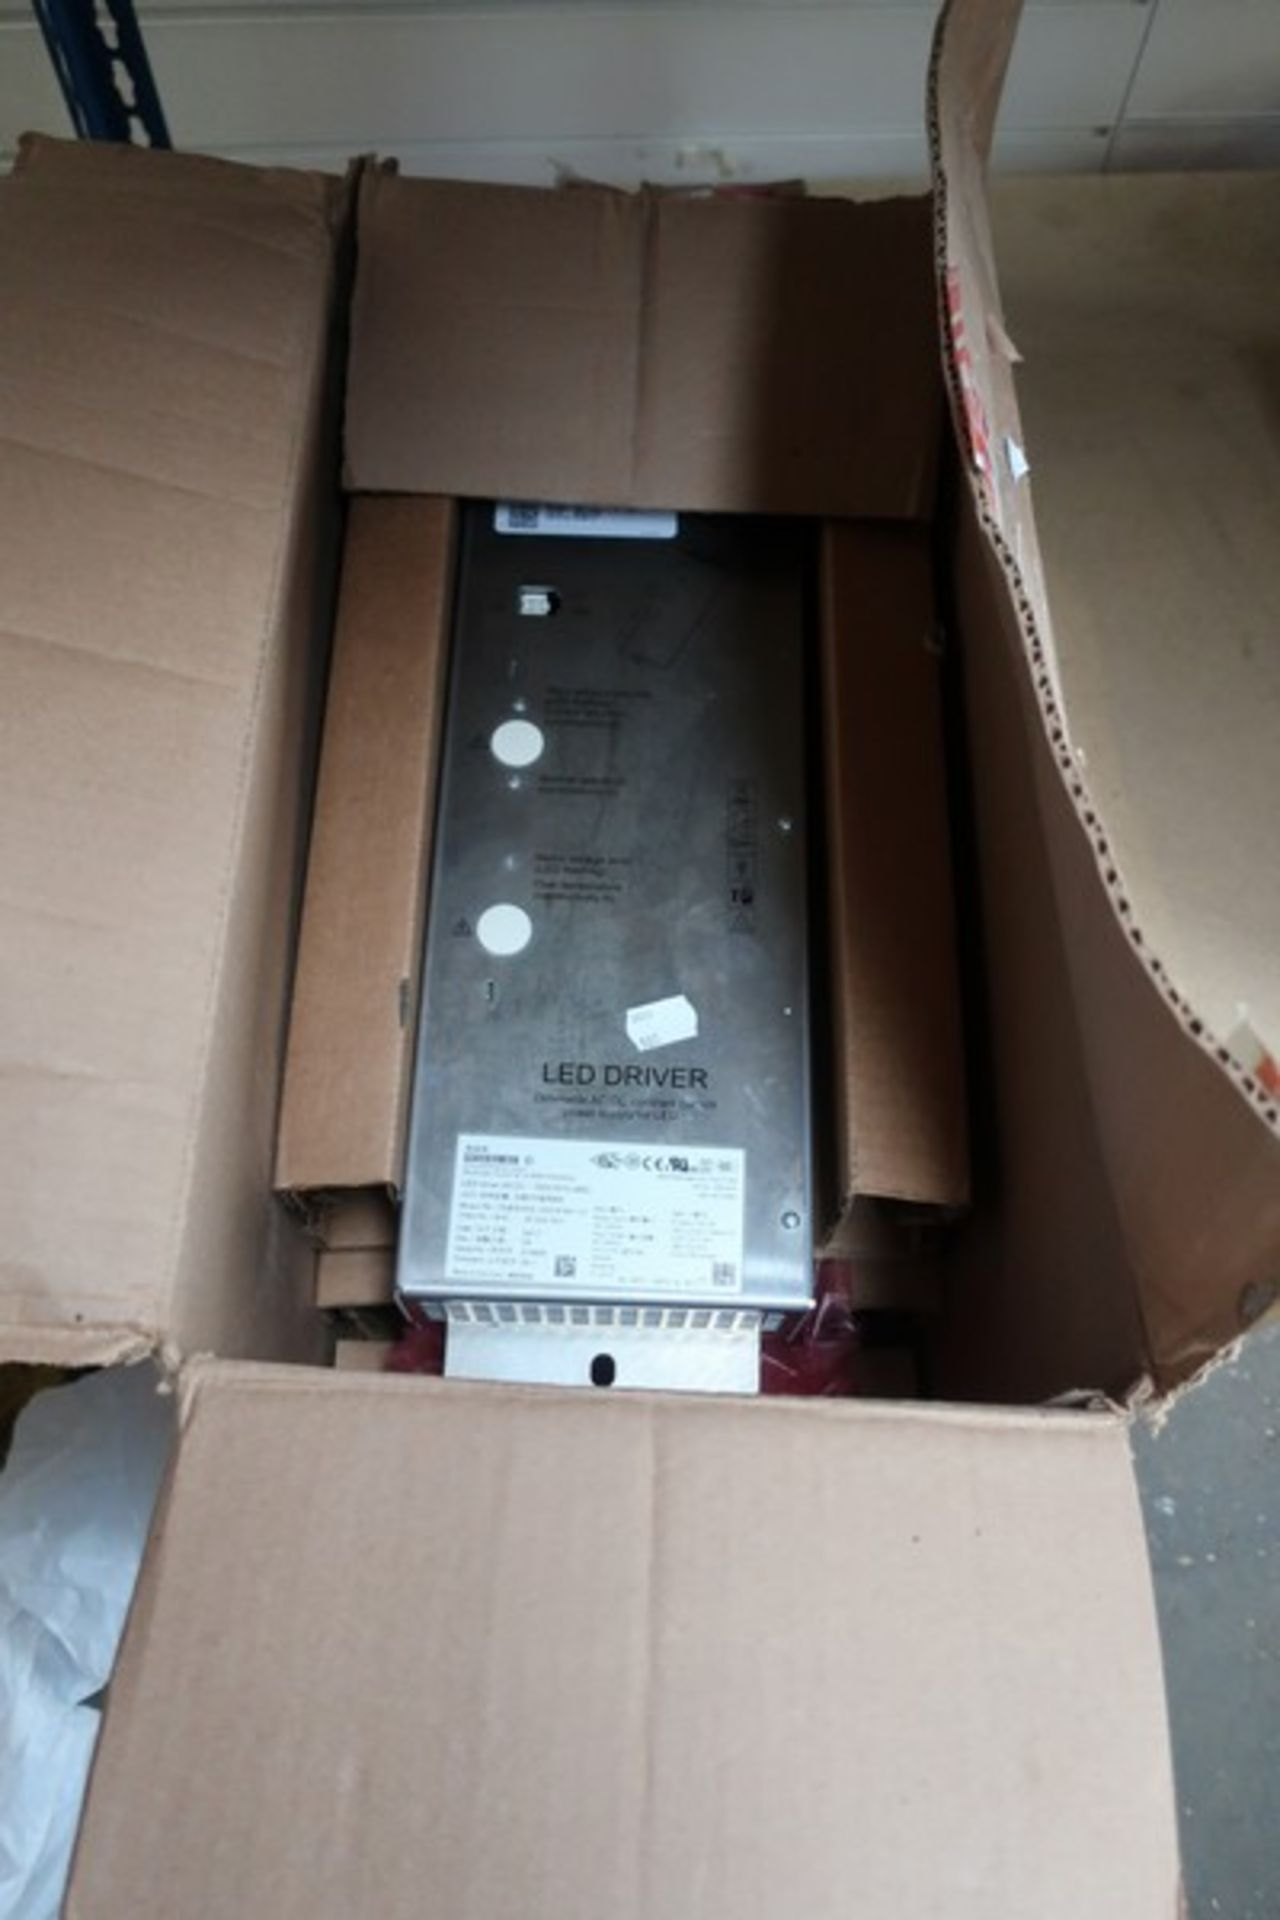 Lot 880 - Two Schilderwerk LED Driver dimmable AC/DC constant current power supplies (LED Drive 2A CC - 750V